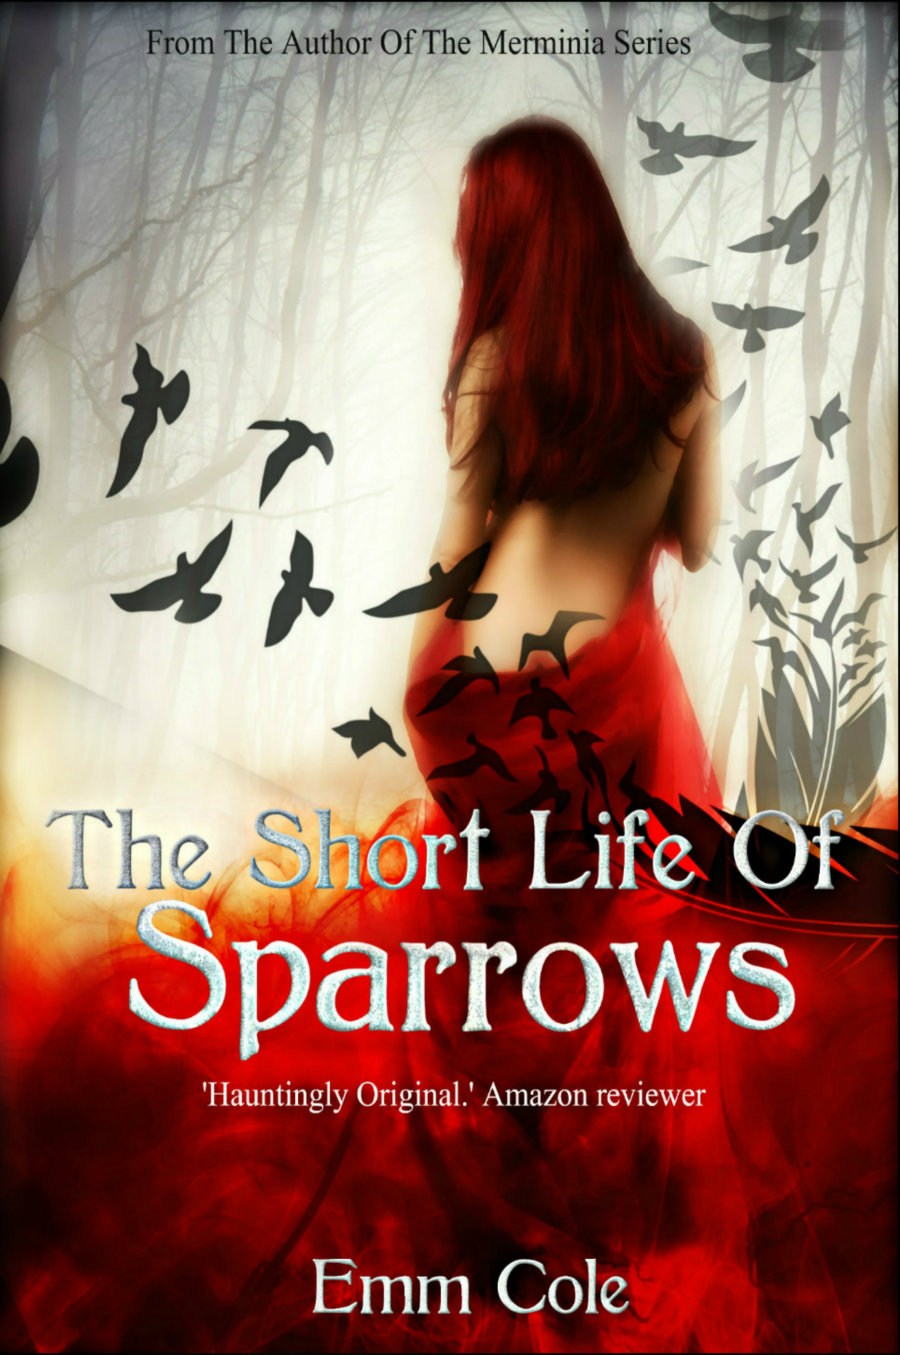 Purchase The Short Life of Sparrows